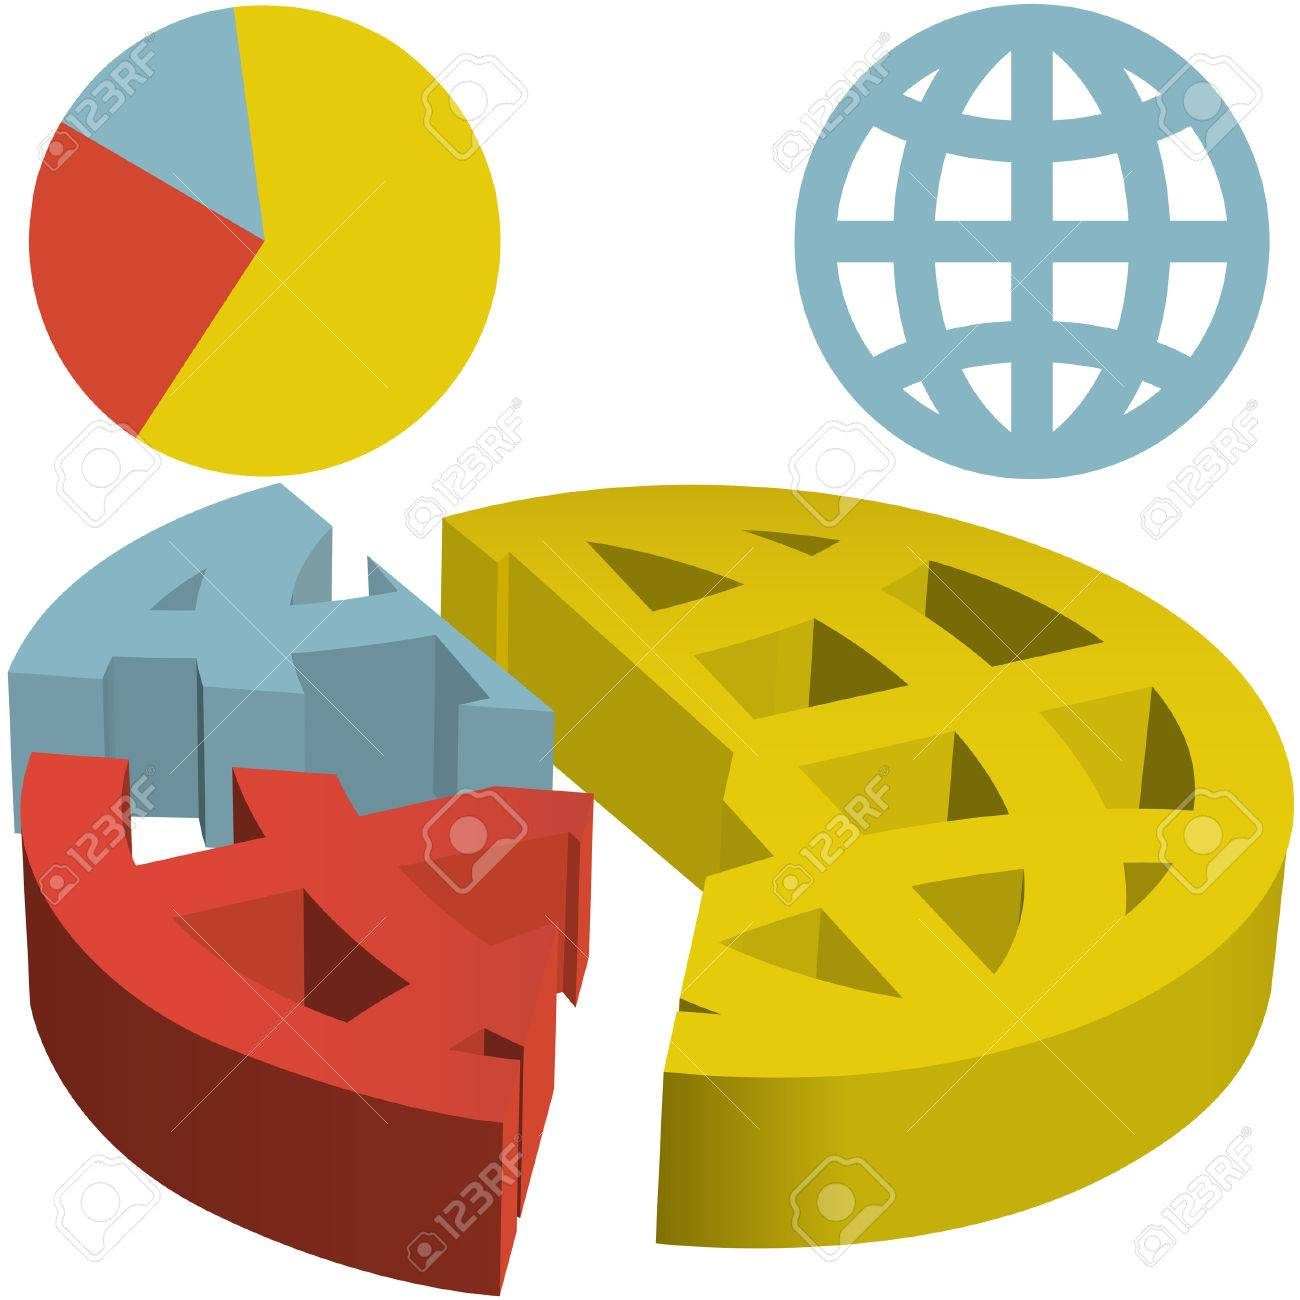 A financial pie chart of the globe with the world divided into a financial pie chart of the globe with the world divided into three parts indicating market nvjuhfo Gallery